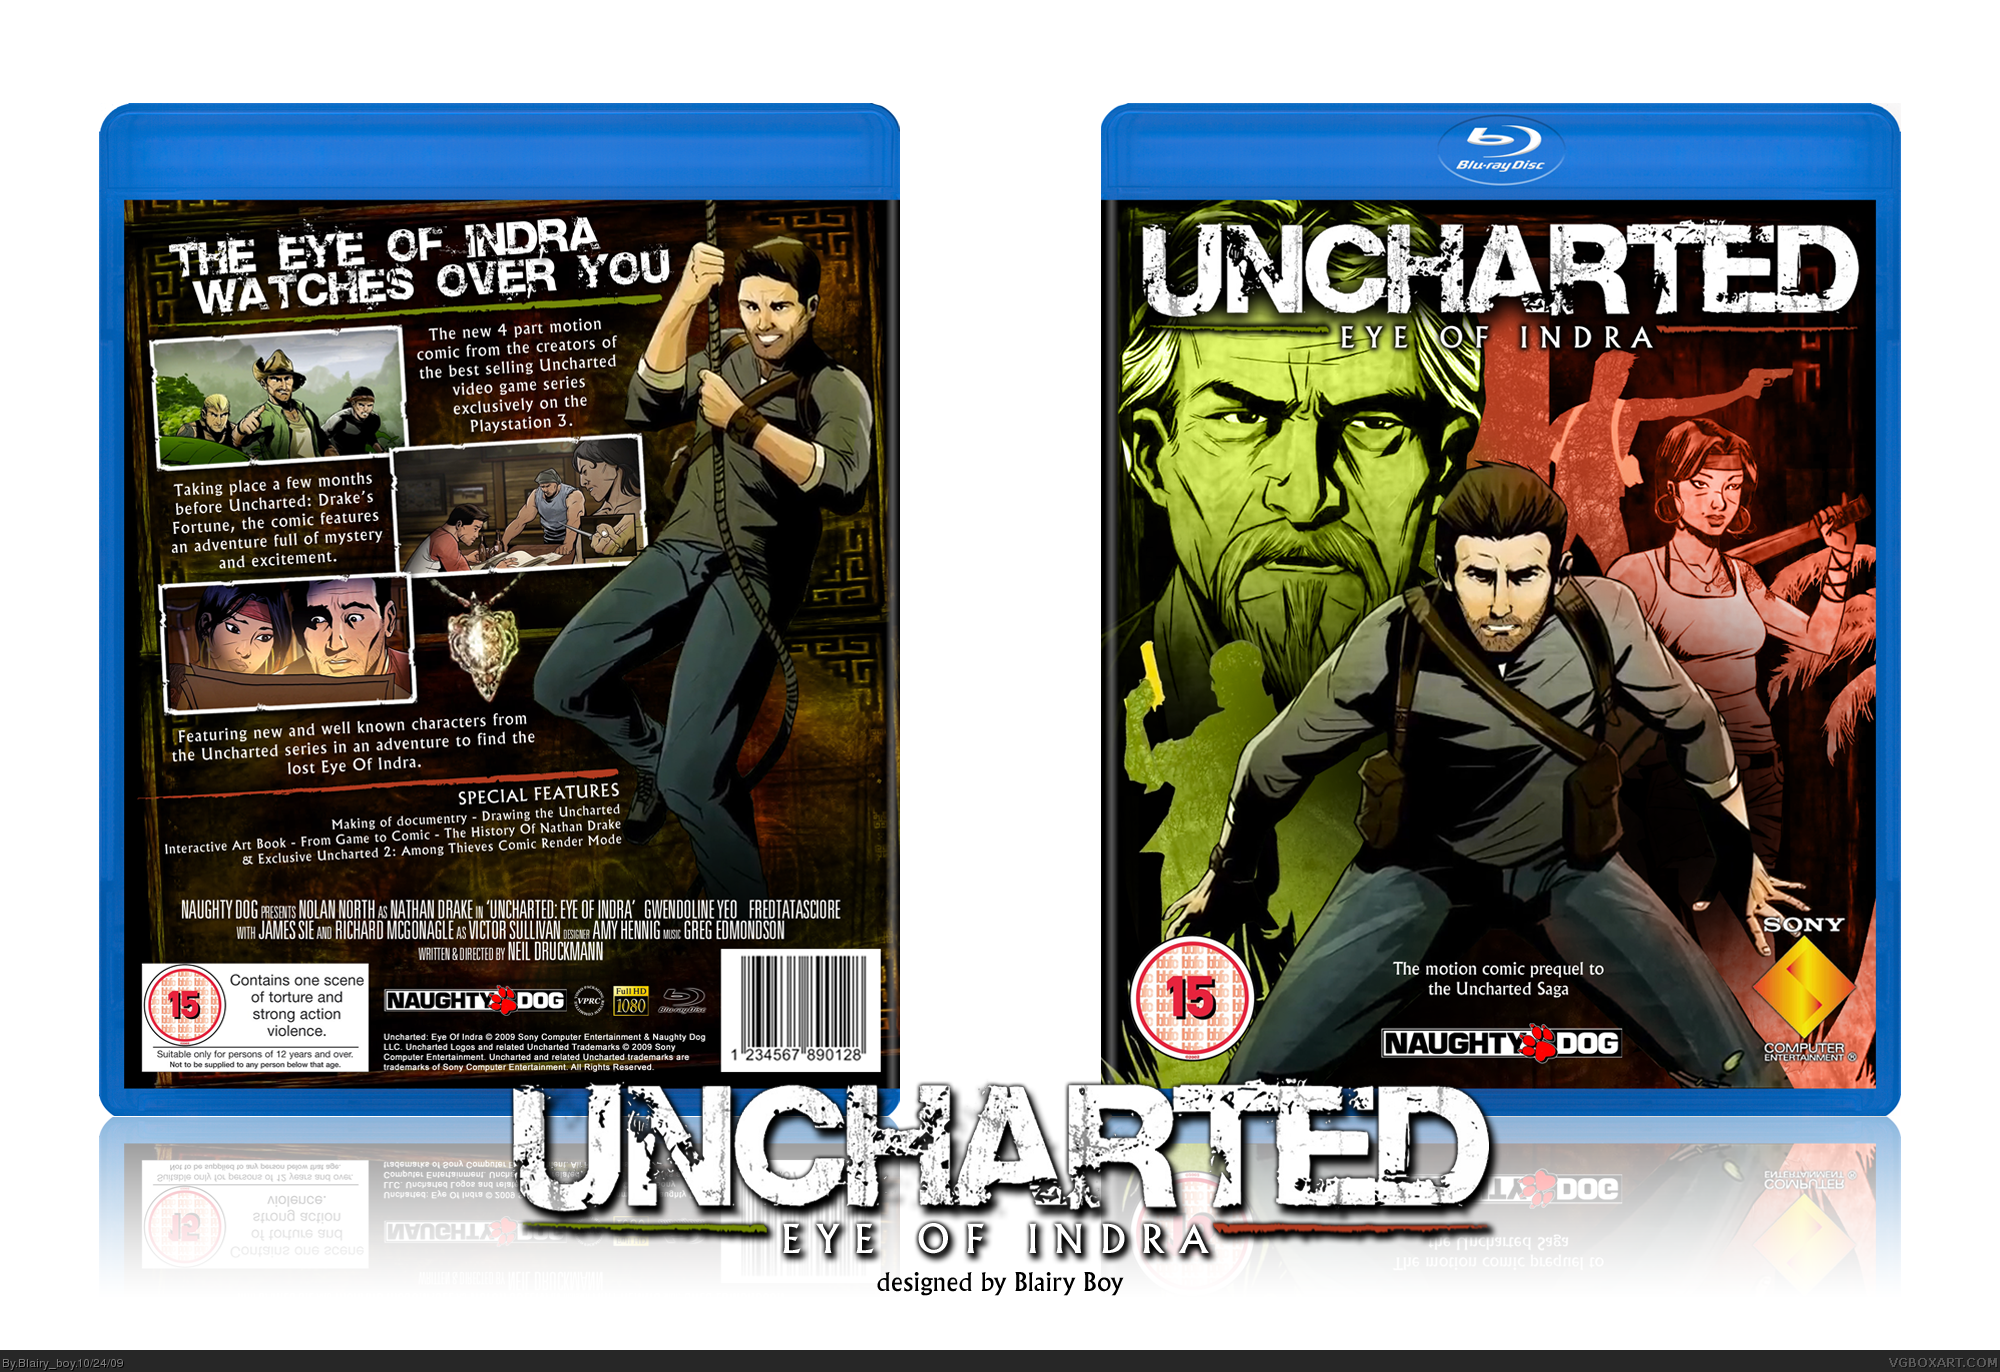 Uncharted: Eye Of Indra box cover